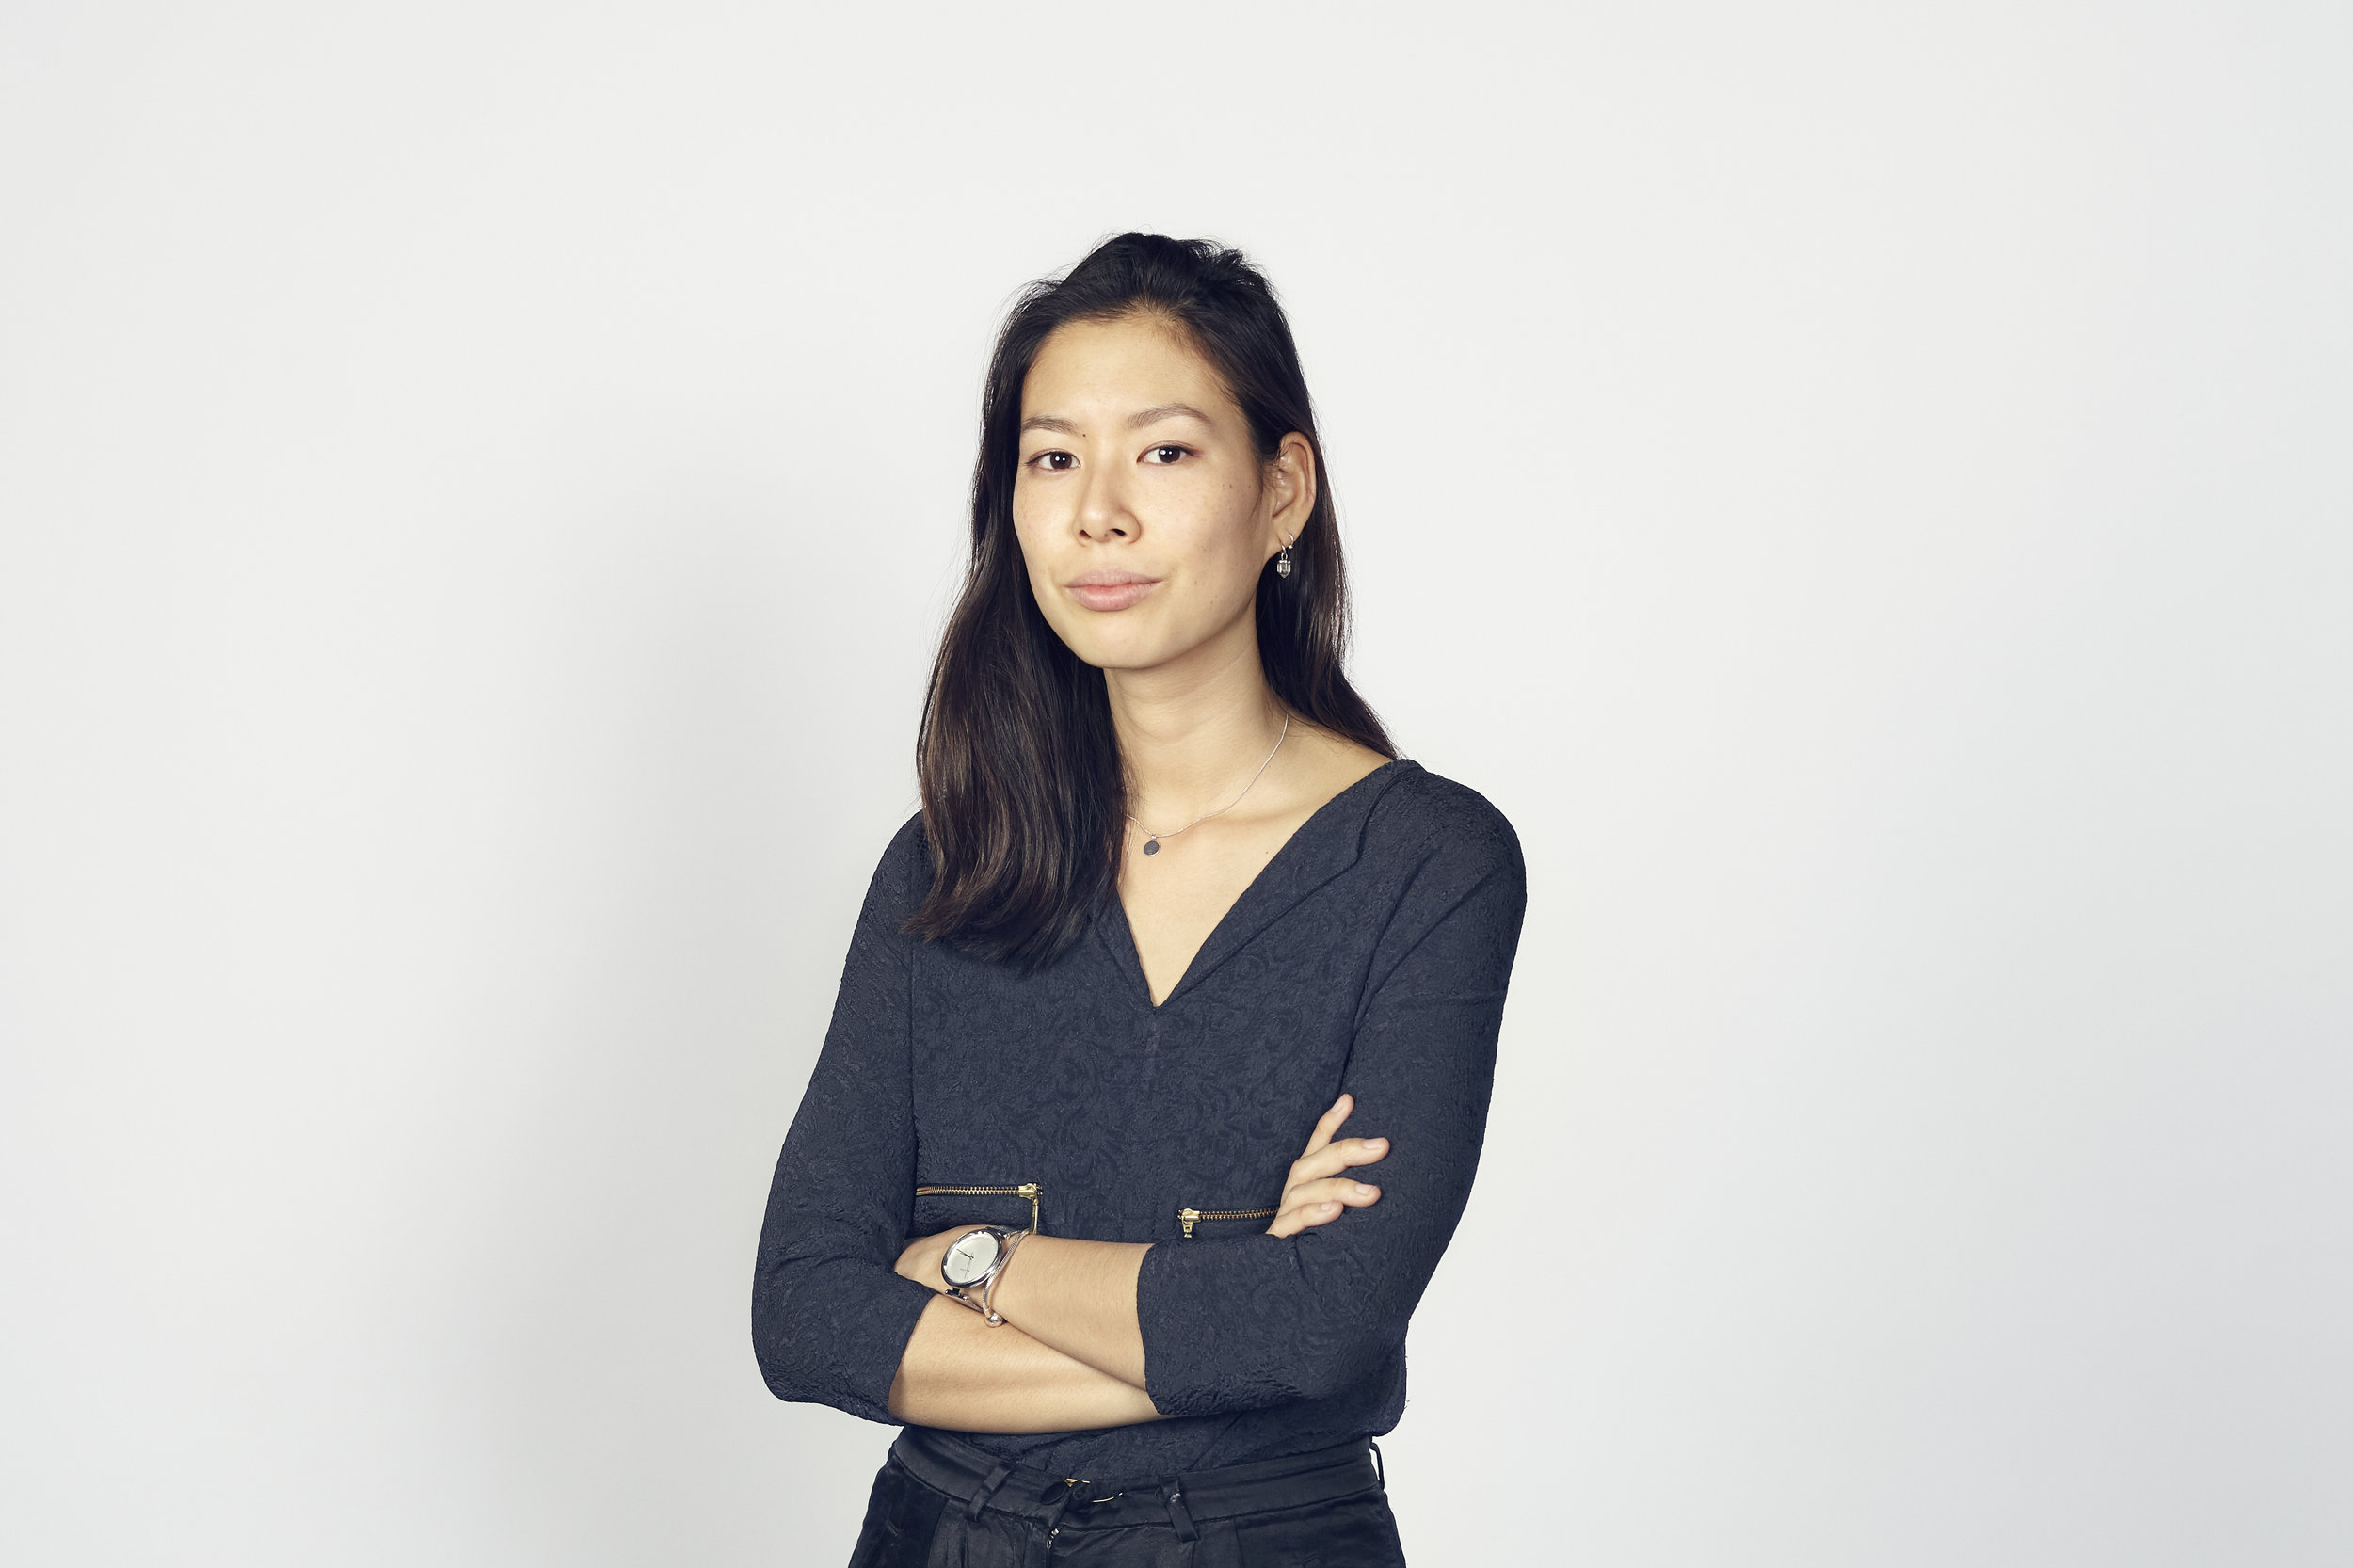 Nancy Hong - Full Stack EngineerThe scale at which we serve at A Million Ads is very impressive and learning more about it is super exciting, especially with the supportive team that I am fortunate to be a part of. If I didn't love engineering, I would probably be a food critic or a mermaid.